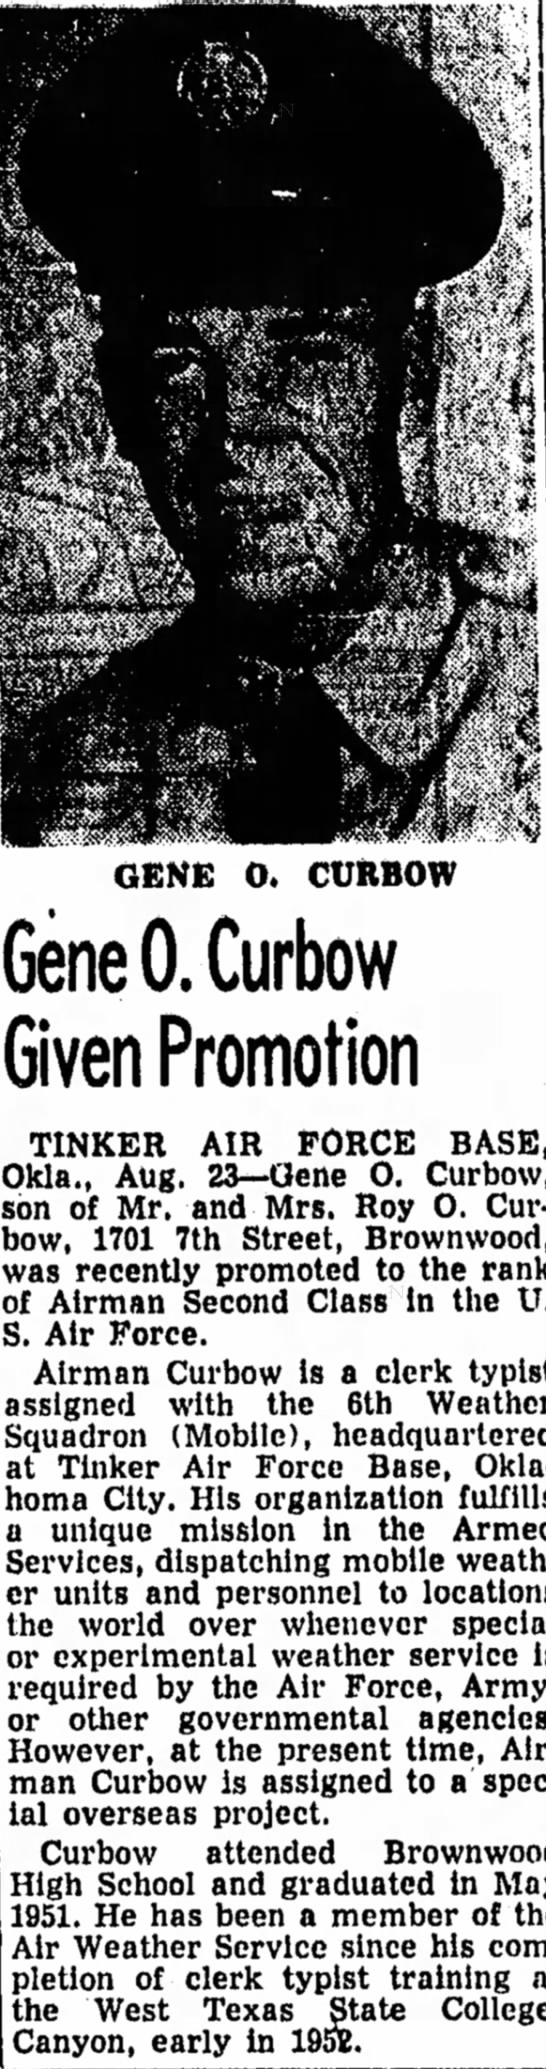 Gene Oliver Curbow - Military -